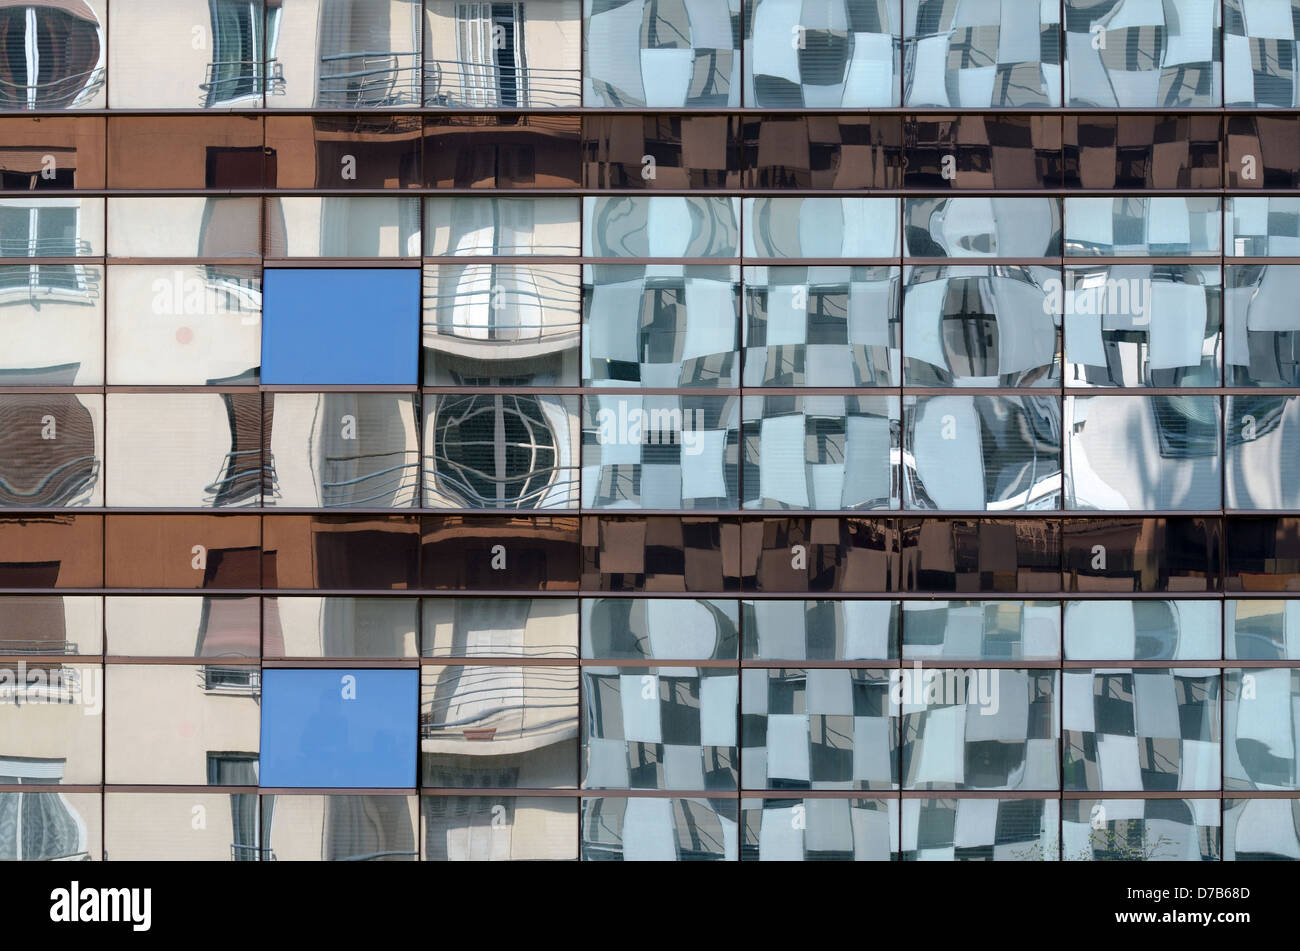 marseille abstract stockfotos marseille abstract bilder alamy. Black Bedroom Furniture Sets. Home Design Ideas